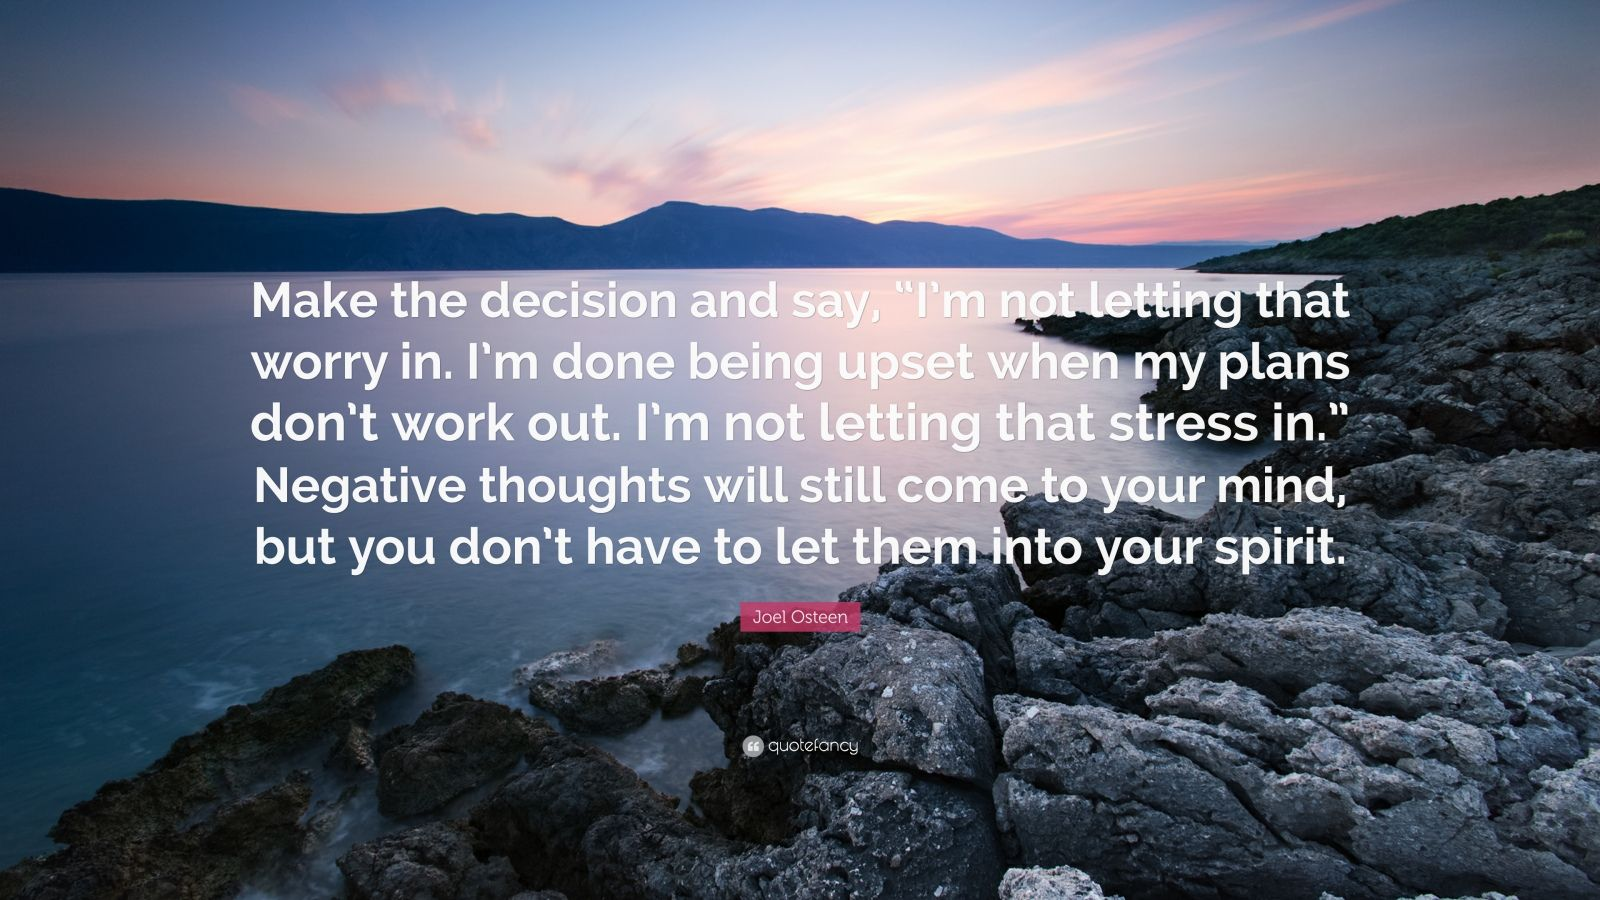 """Joel Osteen Quote: """"Make the decision and say, """"I'm not letting that worry in. I'm done being upset when my plans don't work out. I'm not letting that stress in."""" Negative thoughts will still come to your mind, but you don't have to let them into your spirit."""""""